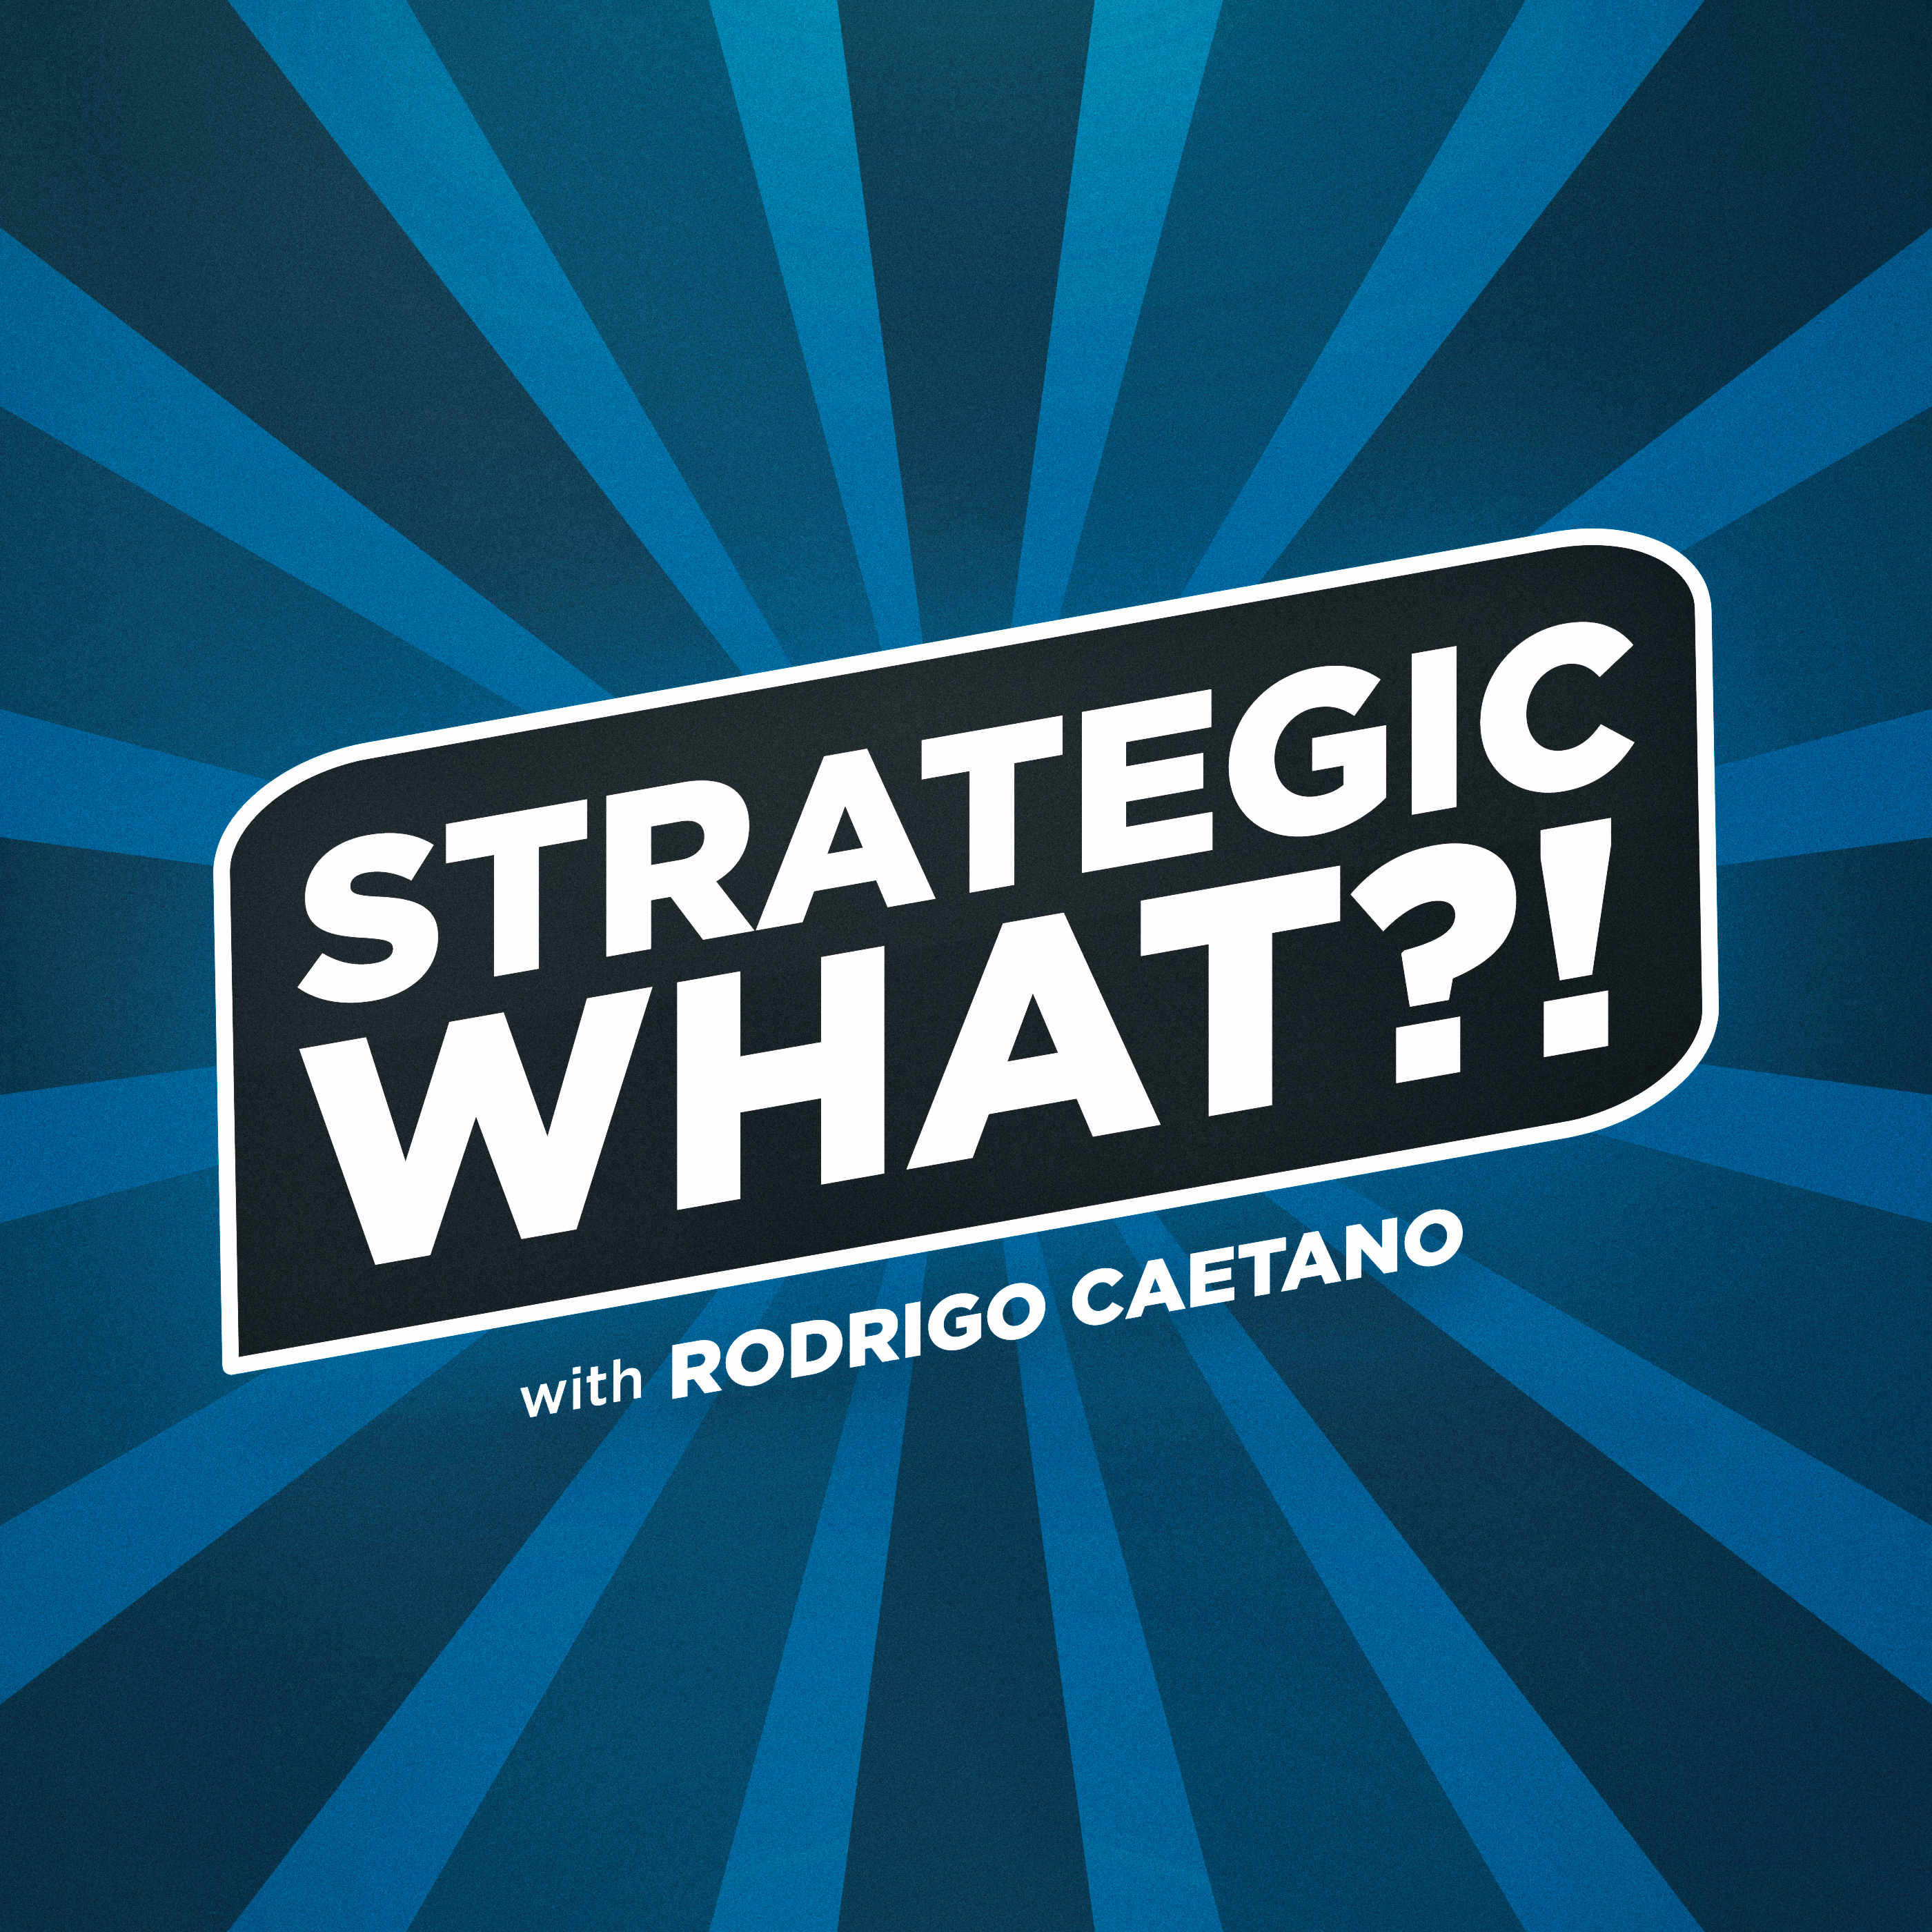 The Strategic What?! Podcast